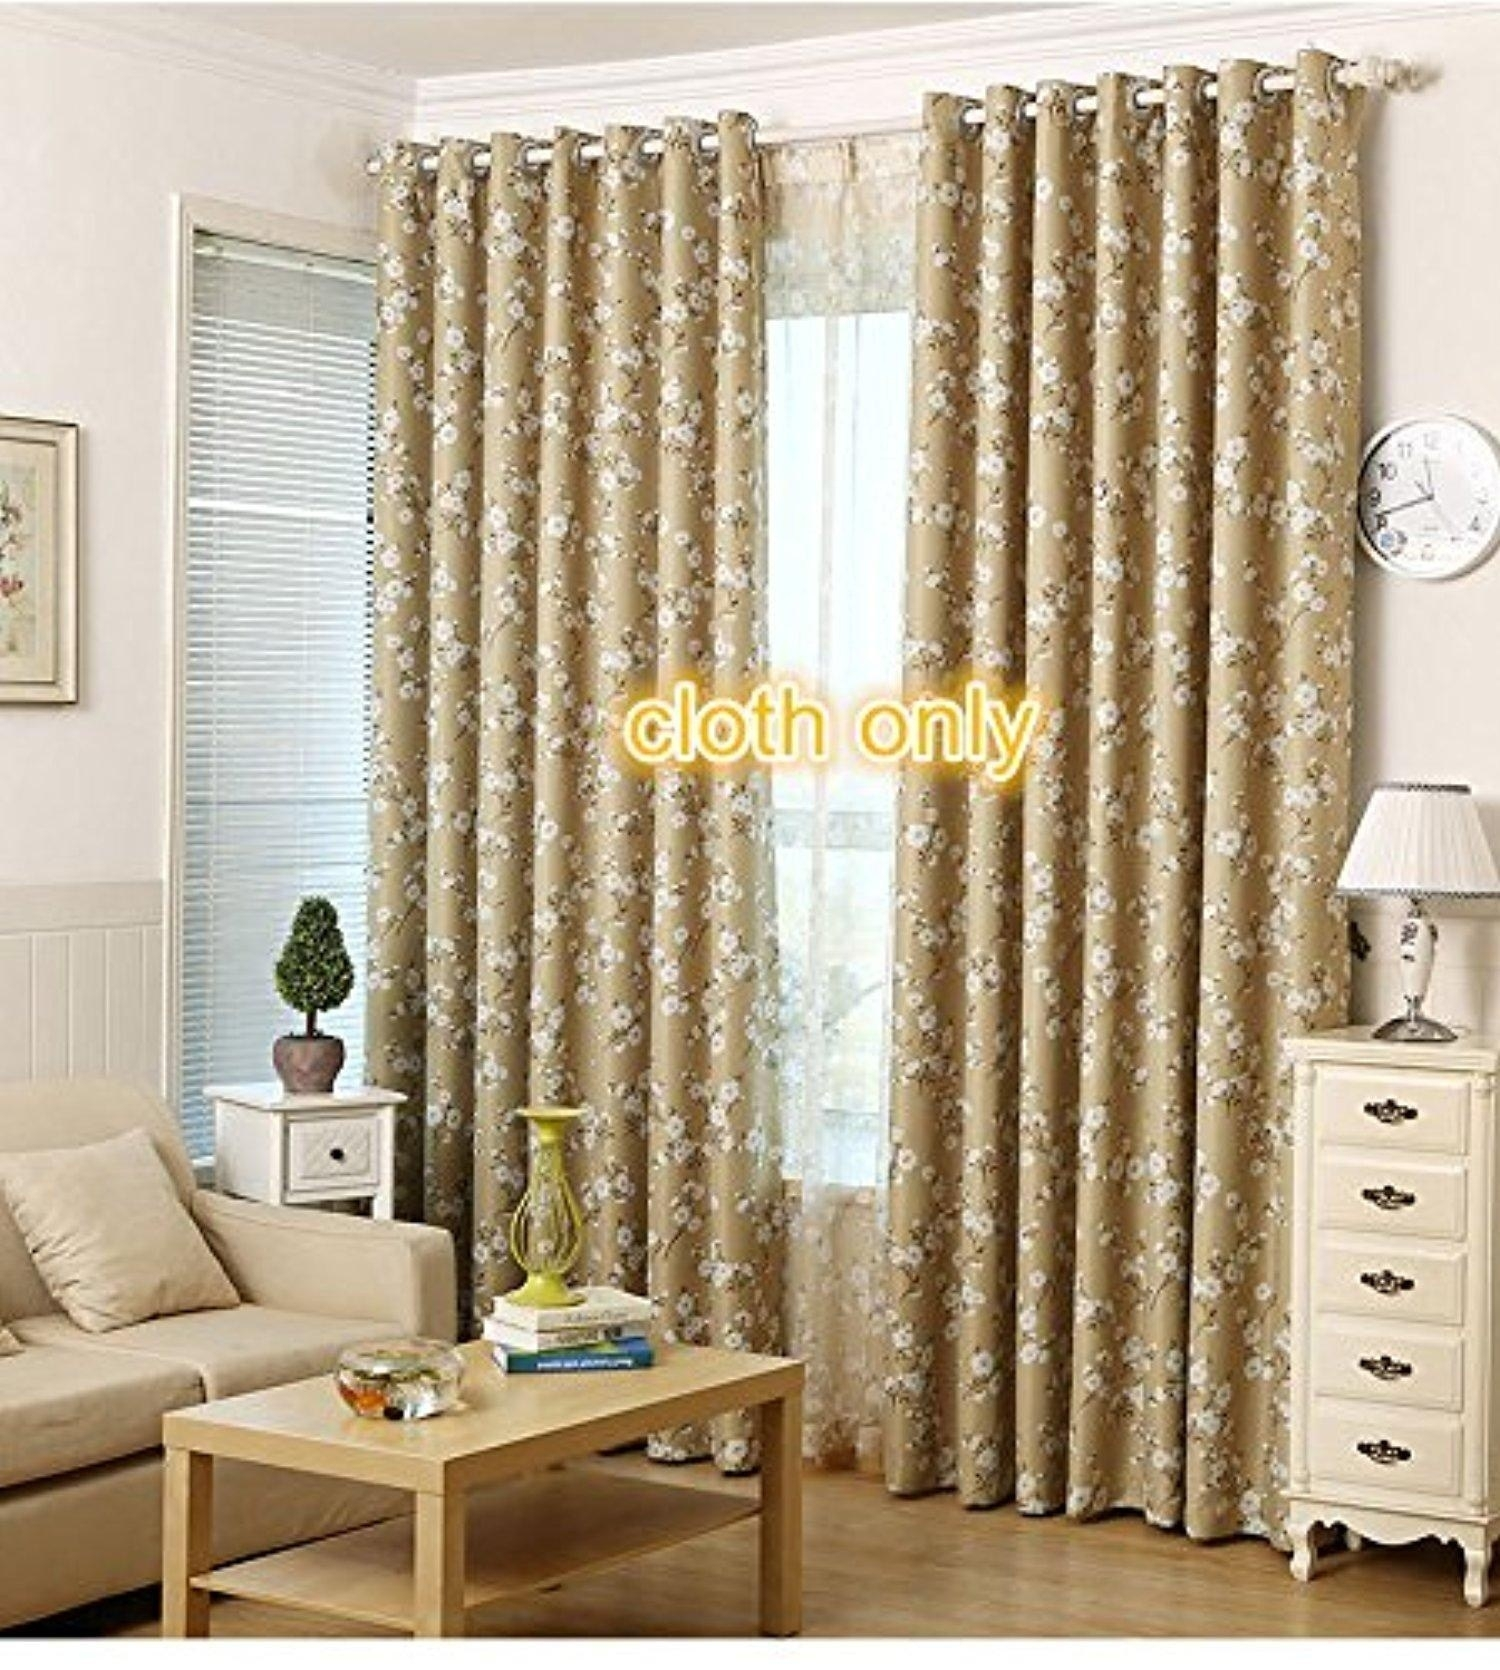 Curtain Curtain Beautiful 96 Inch Blackout Curtains Decor Ideas In 96 Inches Long Curtains (Image 8 of 25)